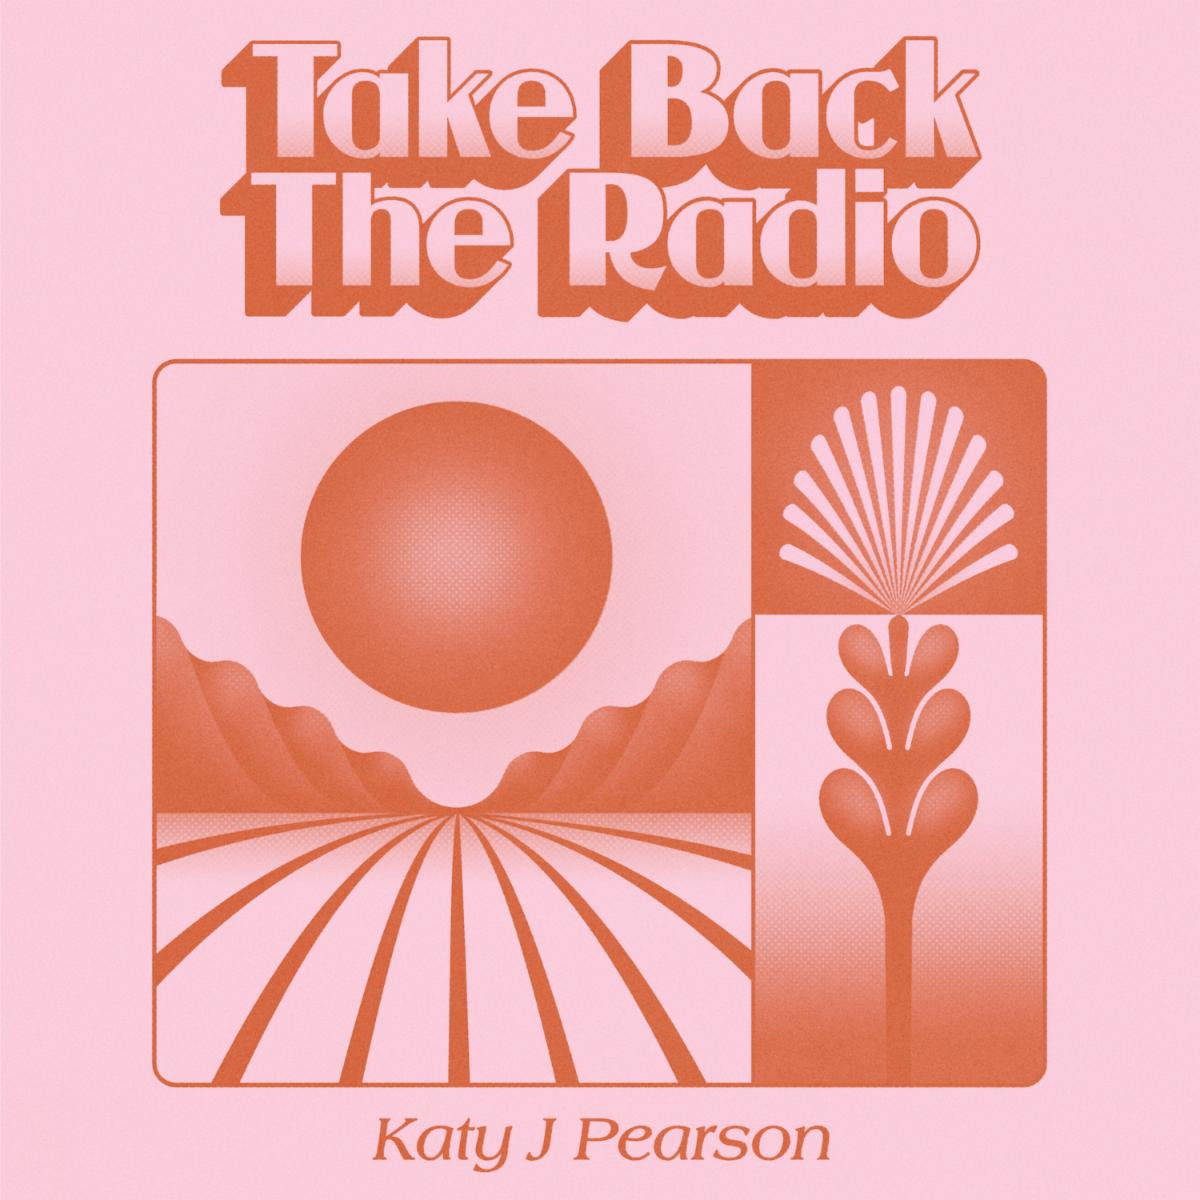 """Northern Transmissions Song of the Day is """"Take Back The Radio"""" by Katy J Pearson"""